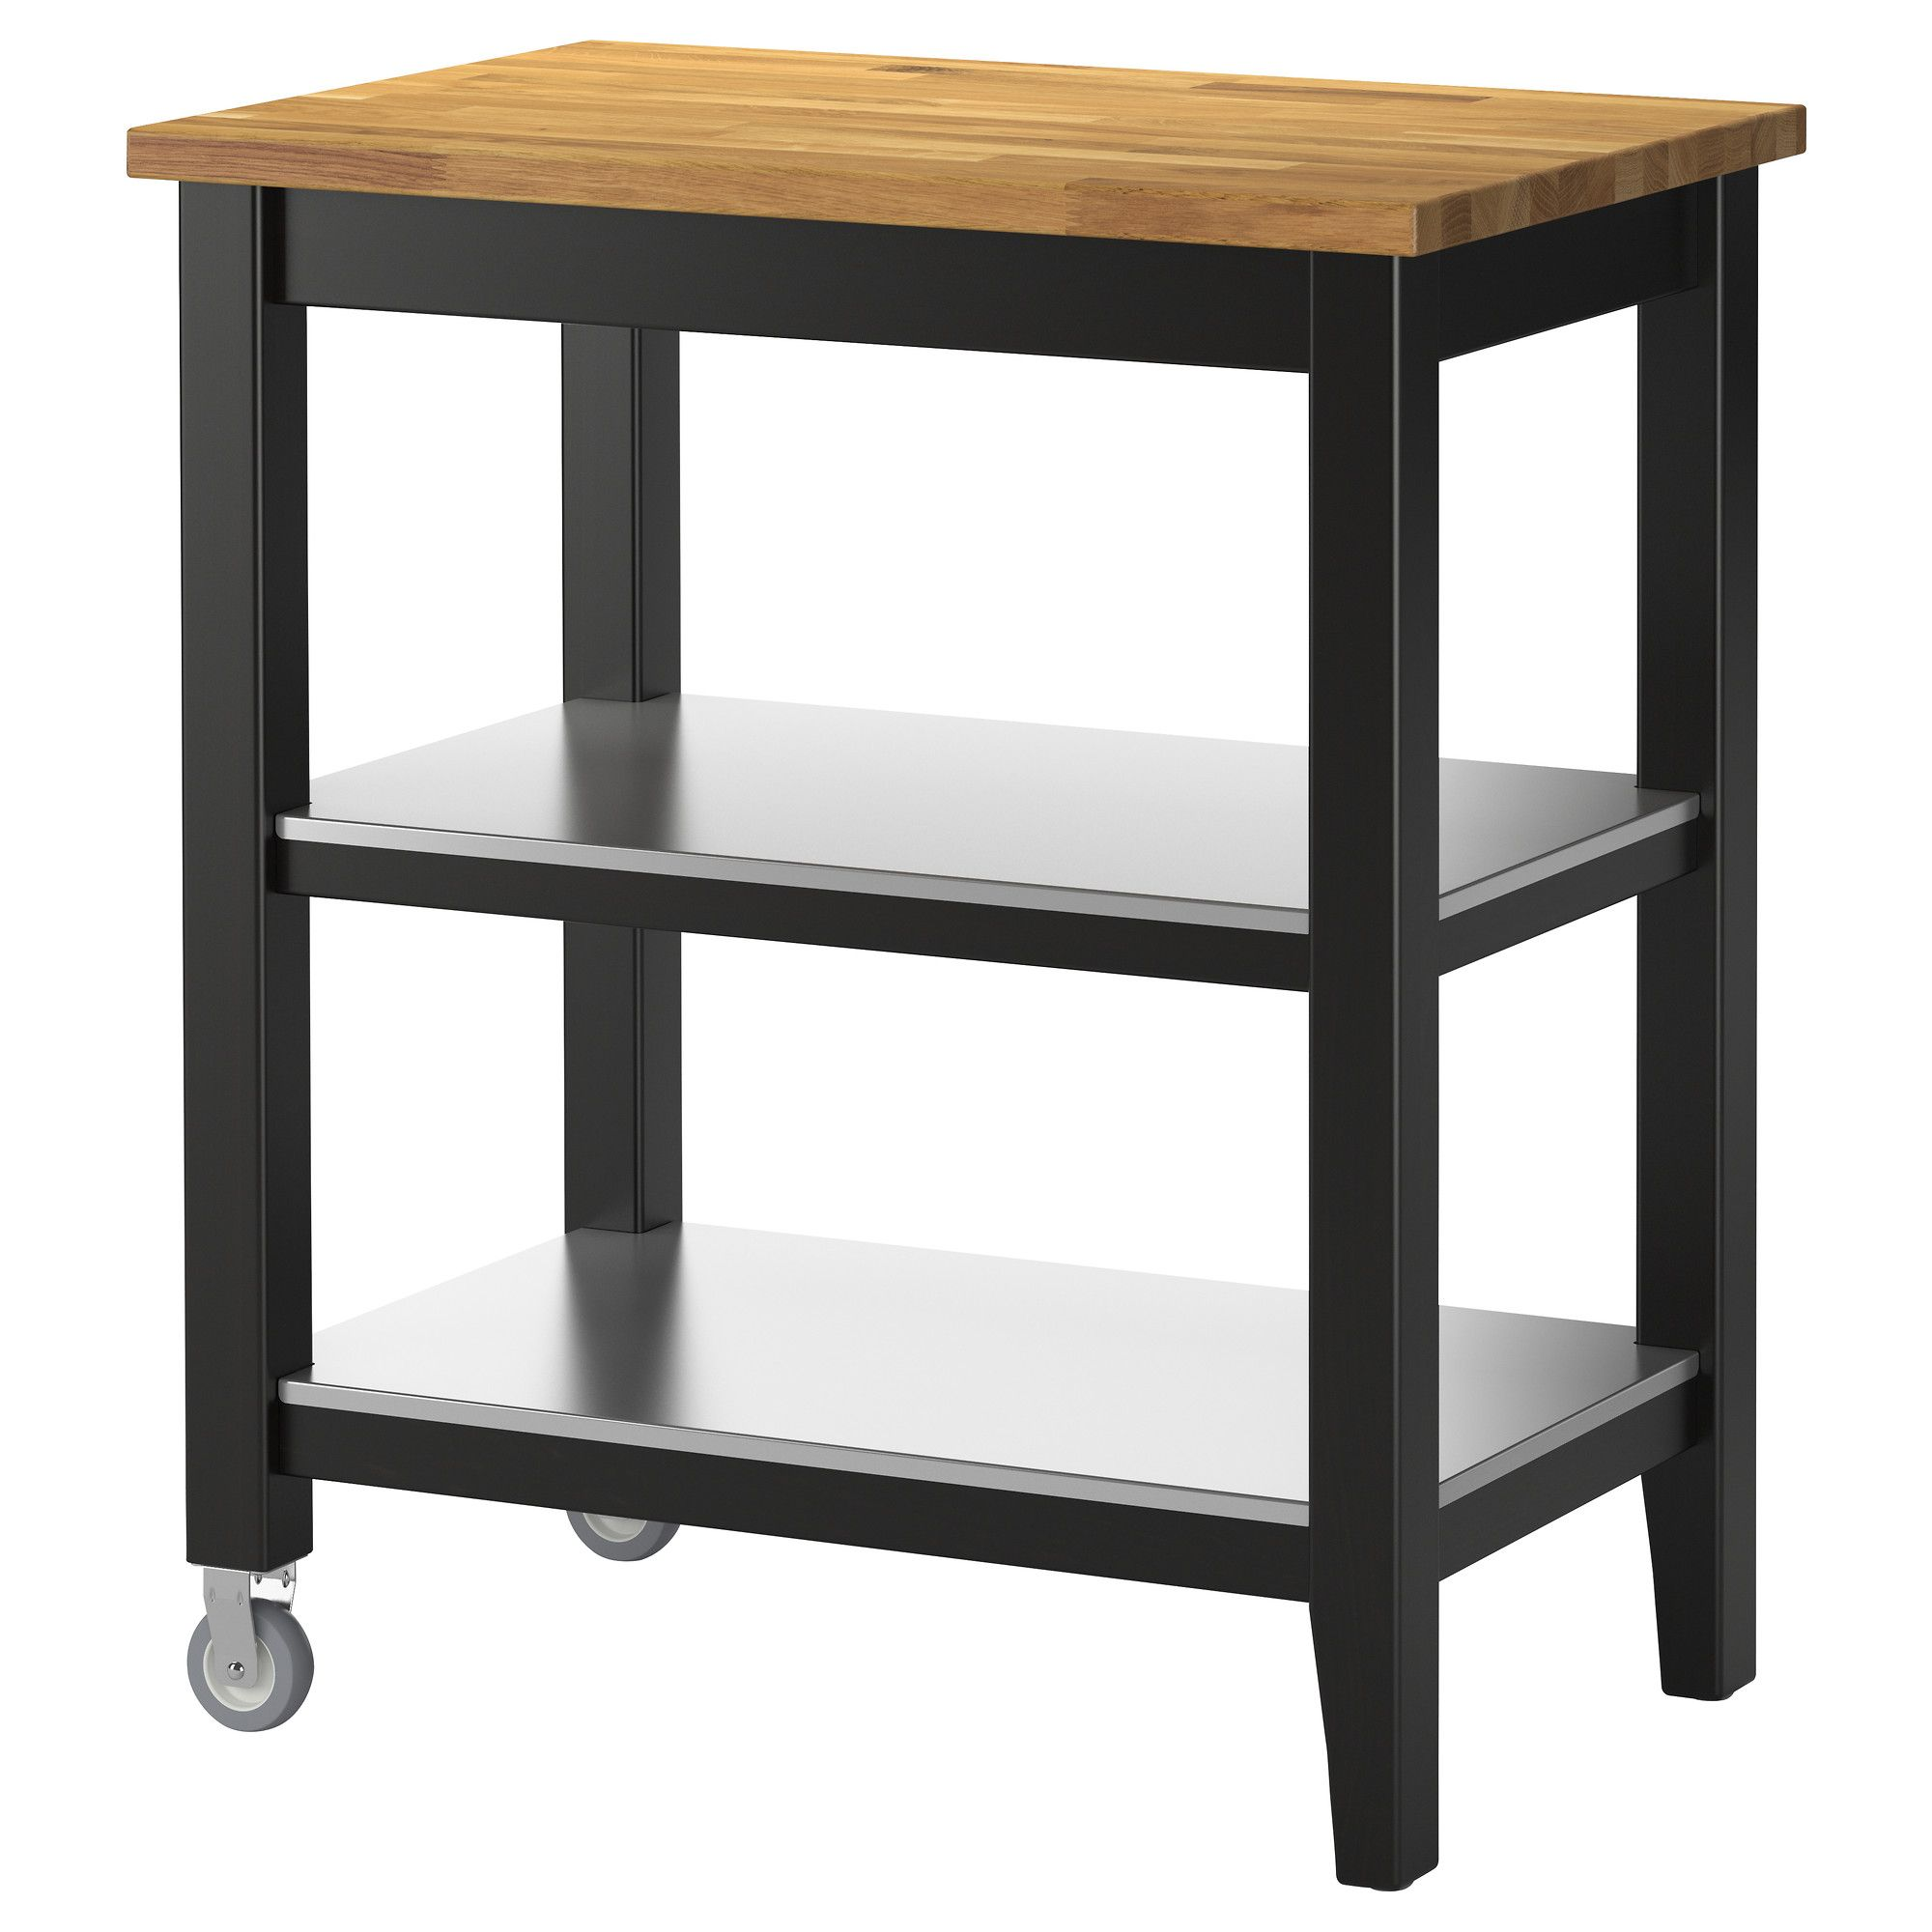 calmly zn ideas kitchen salient varde butcher pleasing portable ikea cart block design enticing